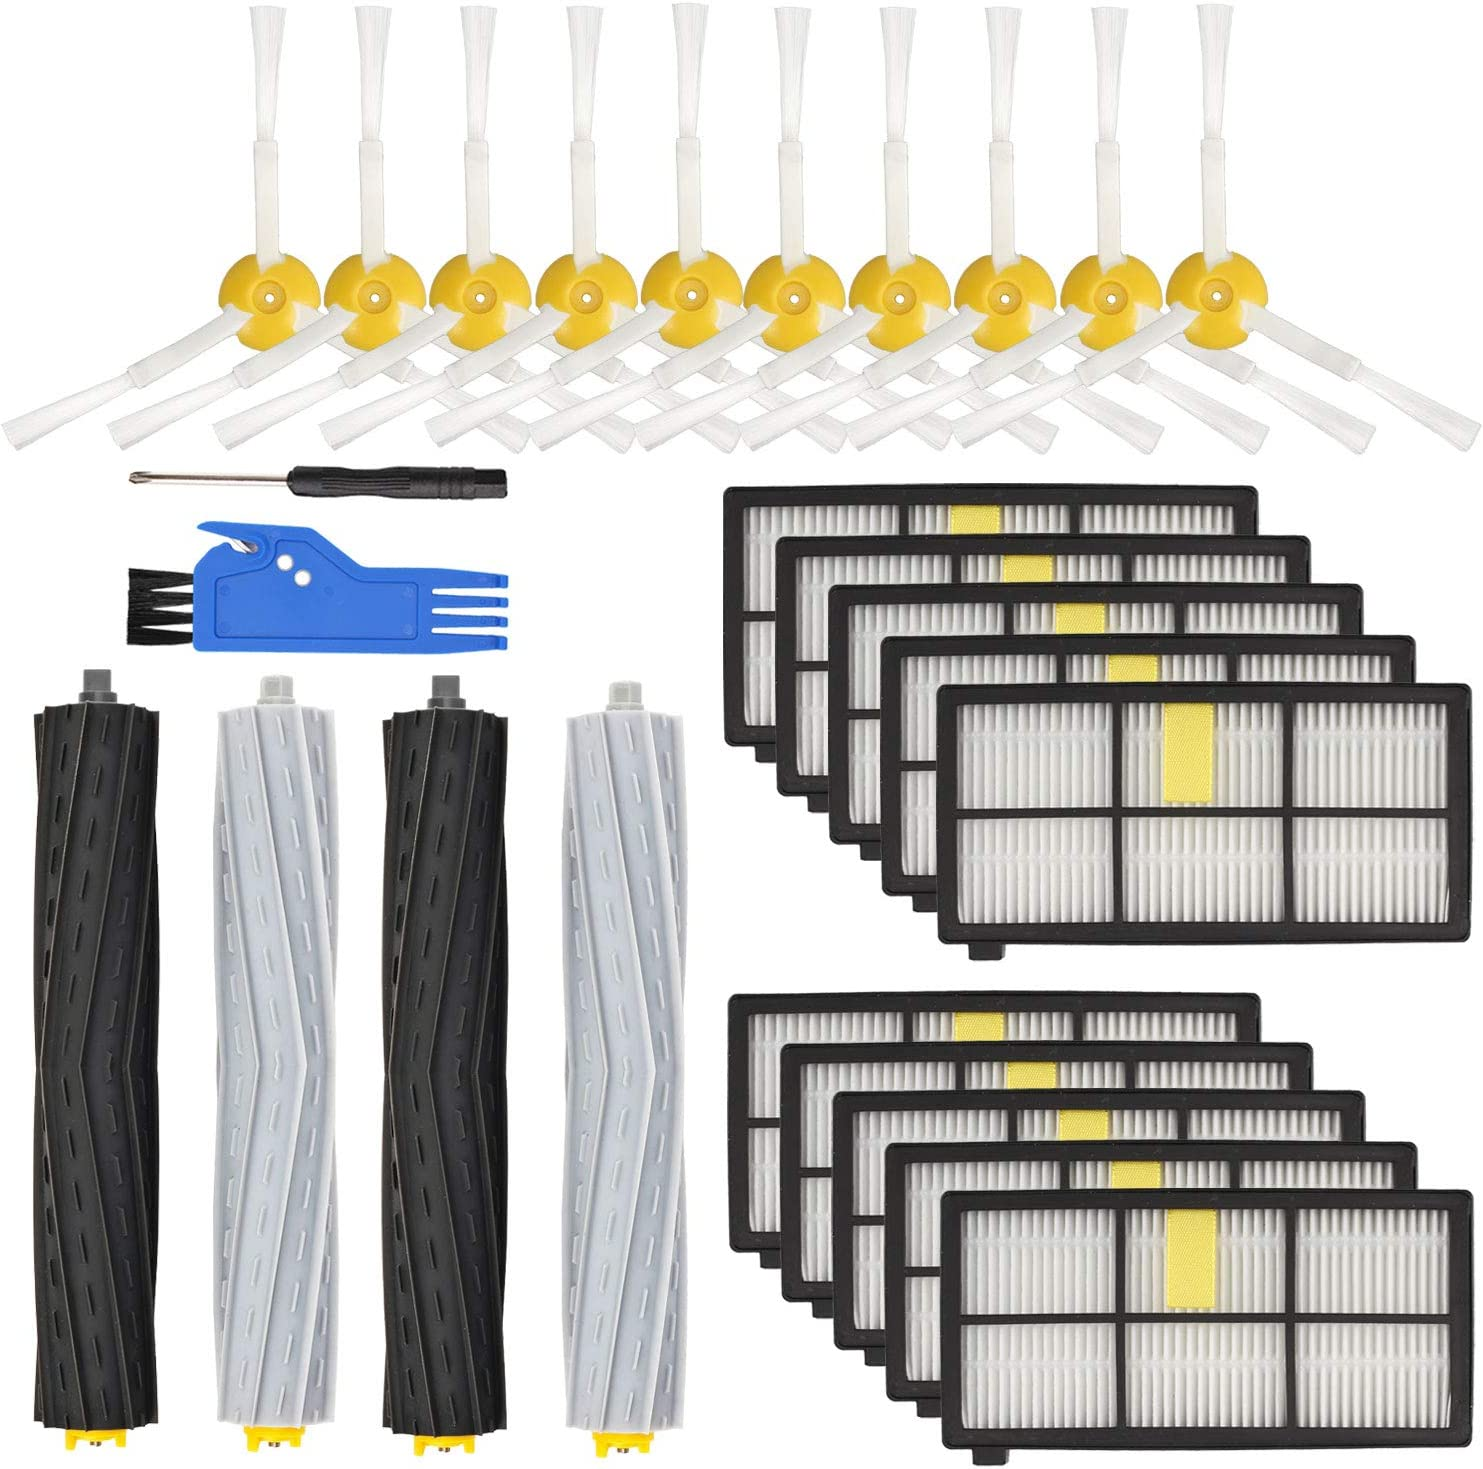 LhhTing Replacement Parts Accessory Kit for iRobot Roomba 800 Series 850 860 861 864 866 870 871 880 890 891 & 900 Series 960 961 964 980 Replenishment Kit,10 Filter,10 Side Brush,2 Debris Extractor